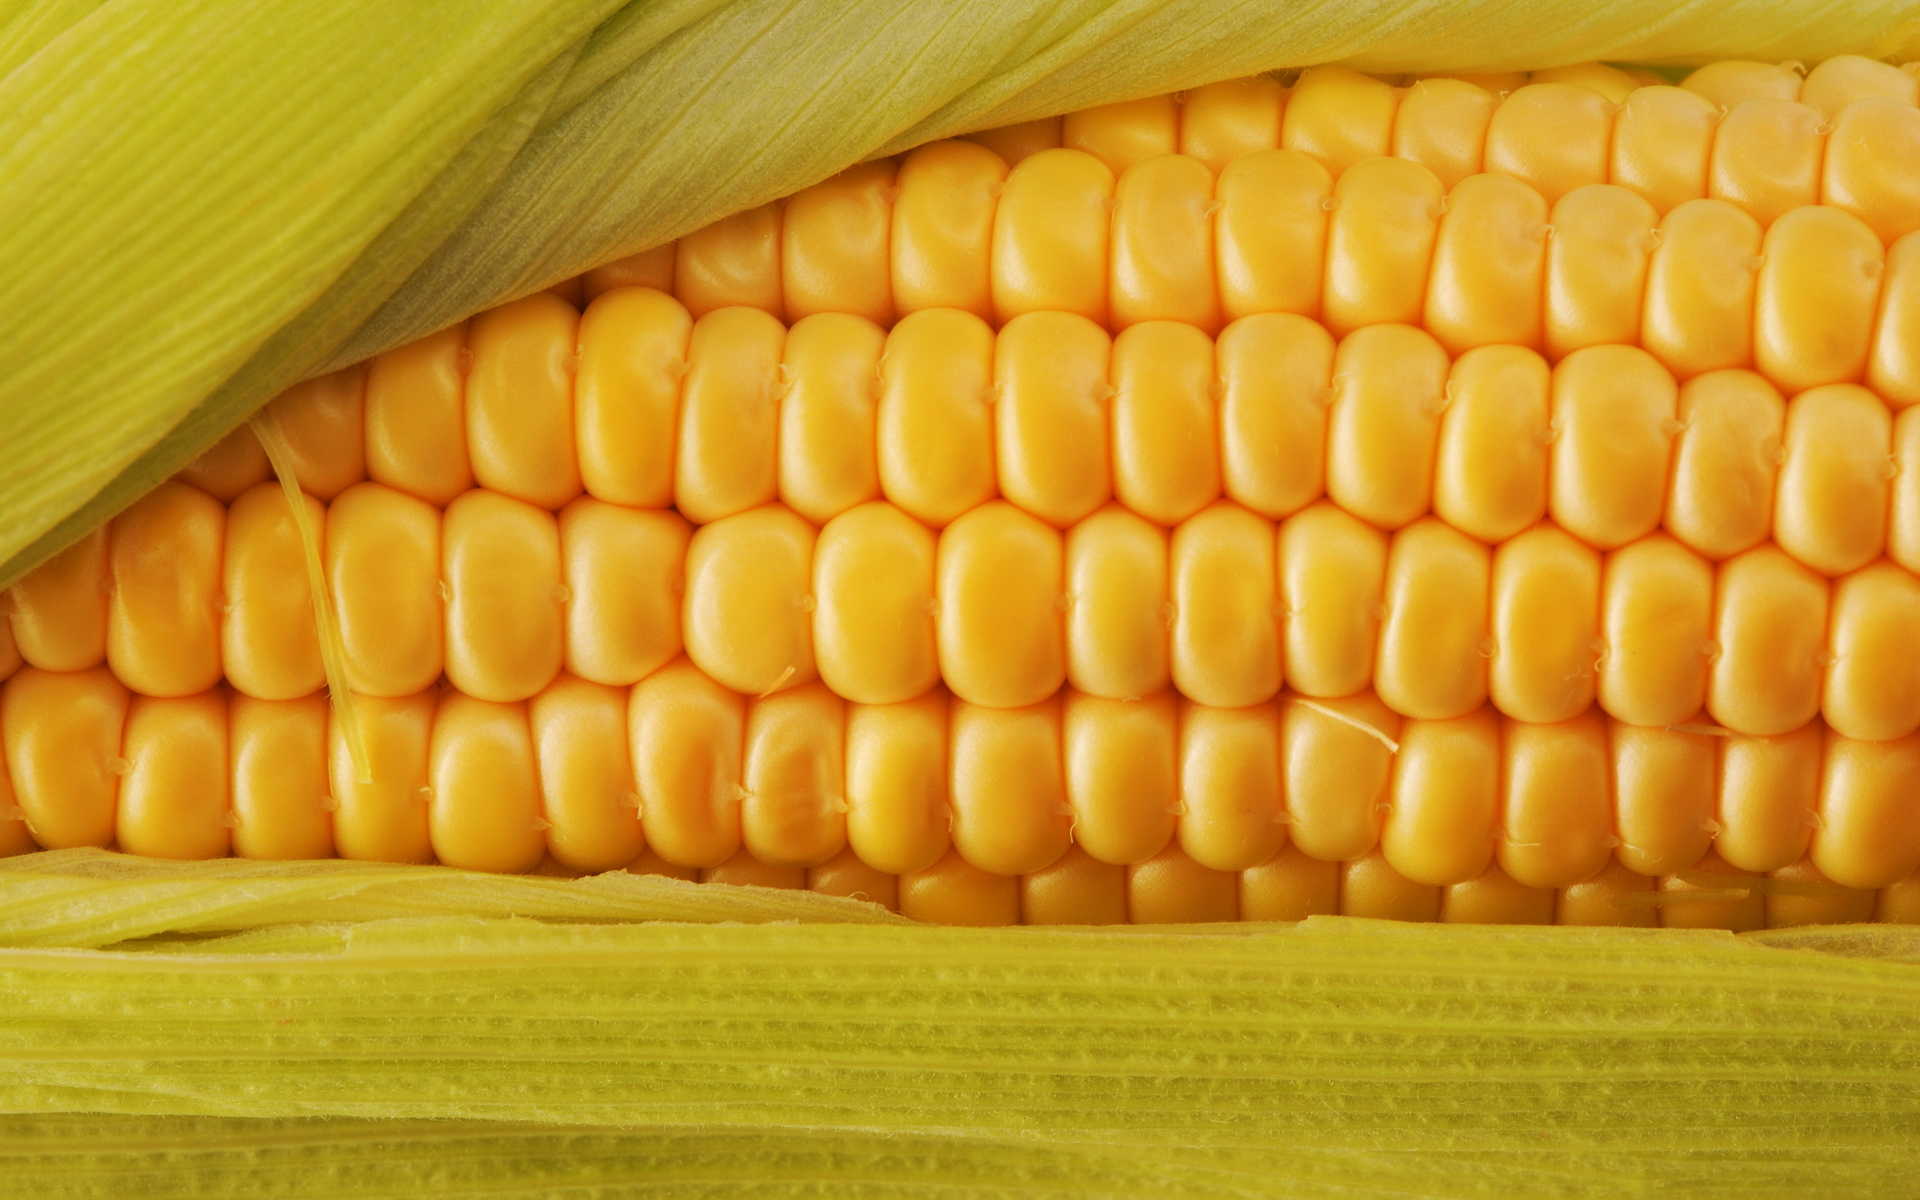 corn close up wallpaper 46114